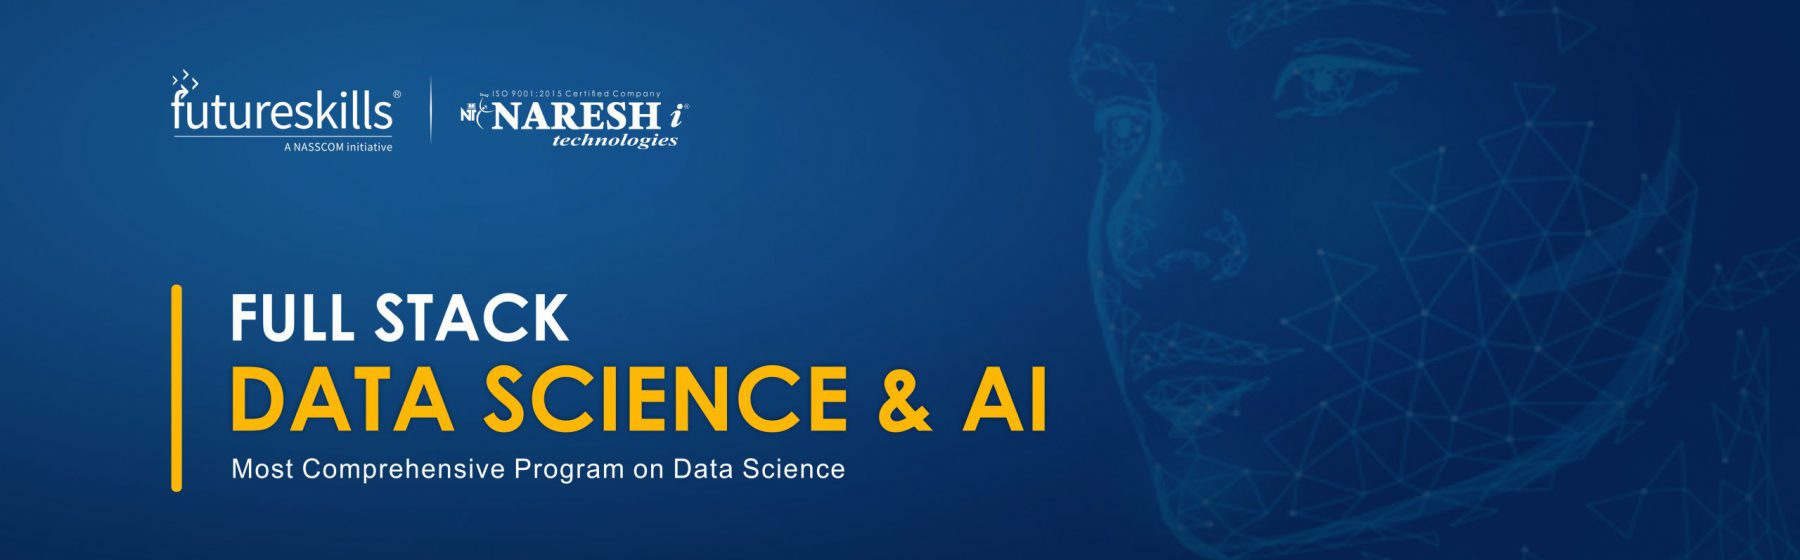 Full Stack Data Science and AI Program